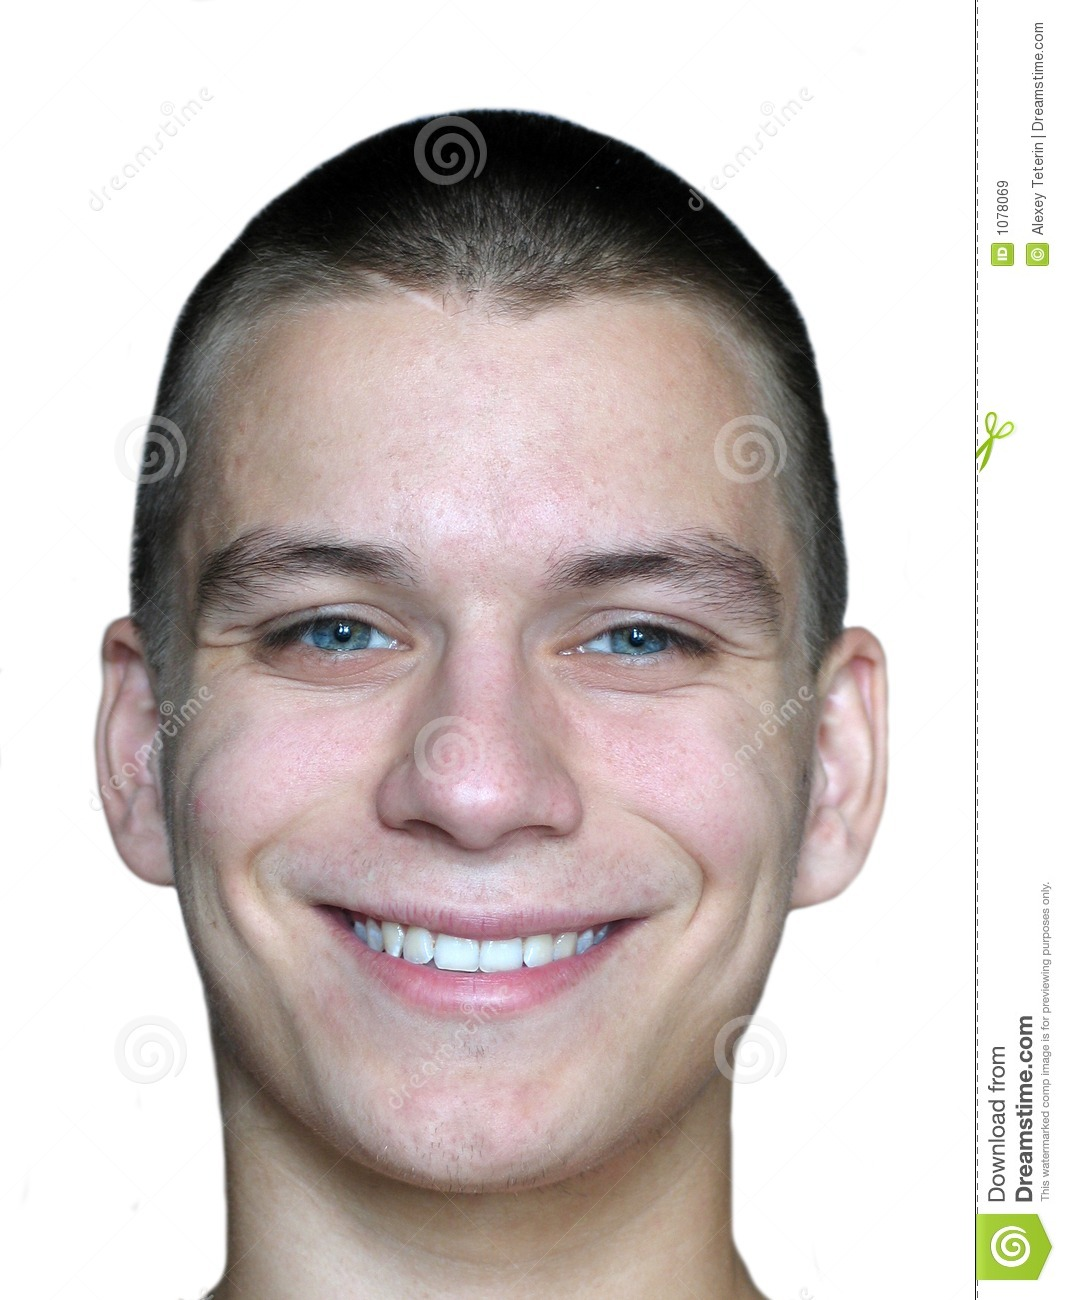 Smiling Man's Face Royalty Free Stock Images - Image: 1078069